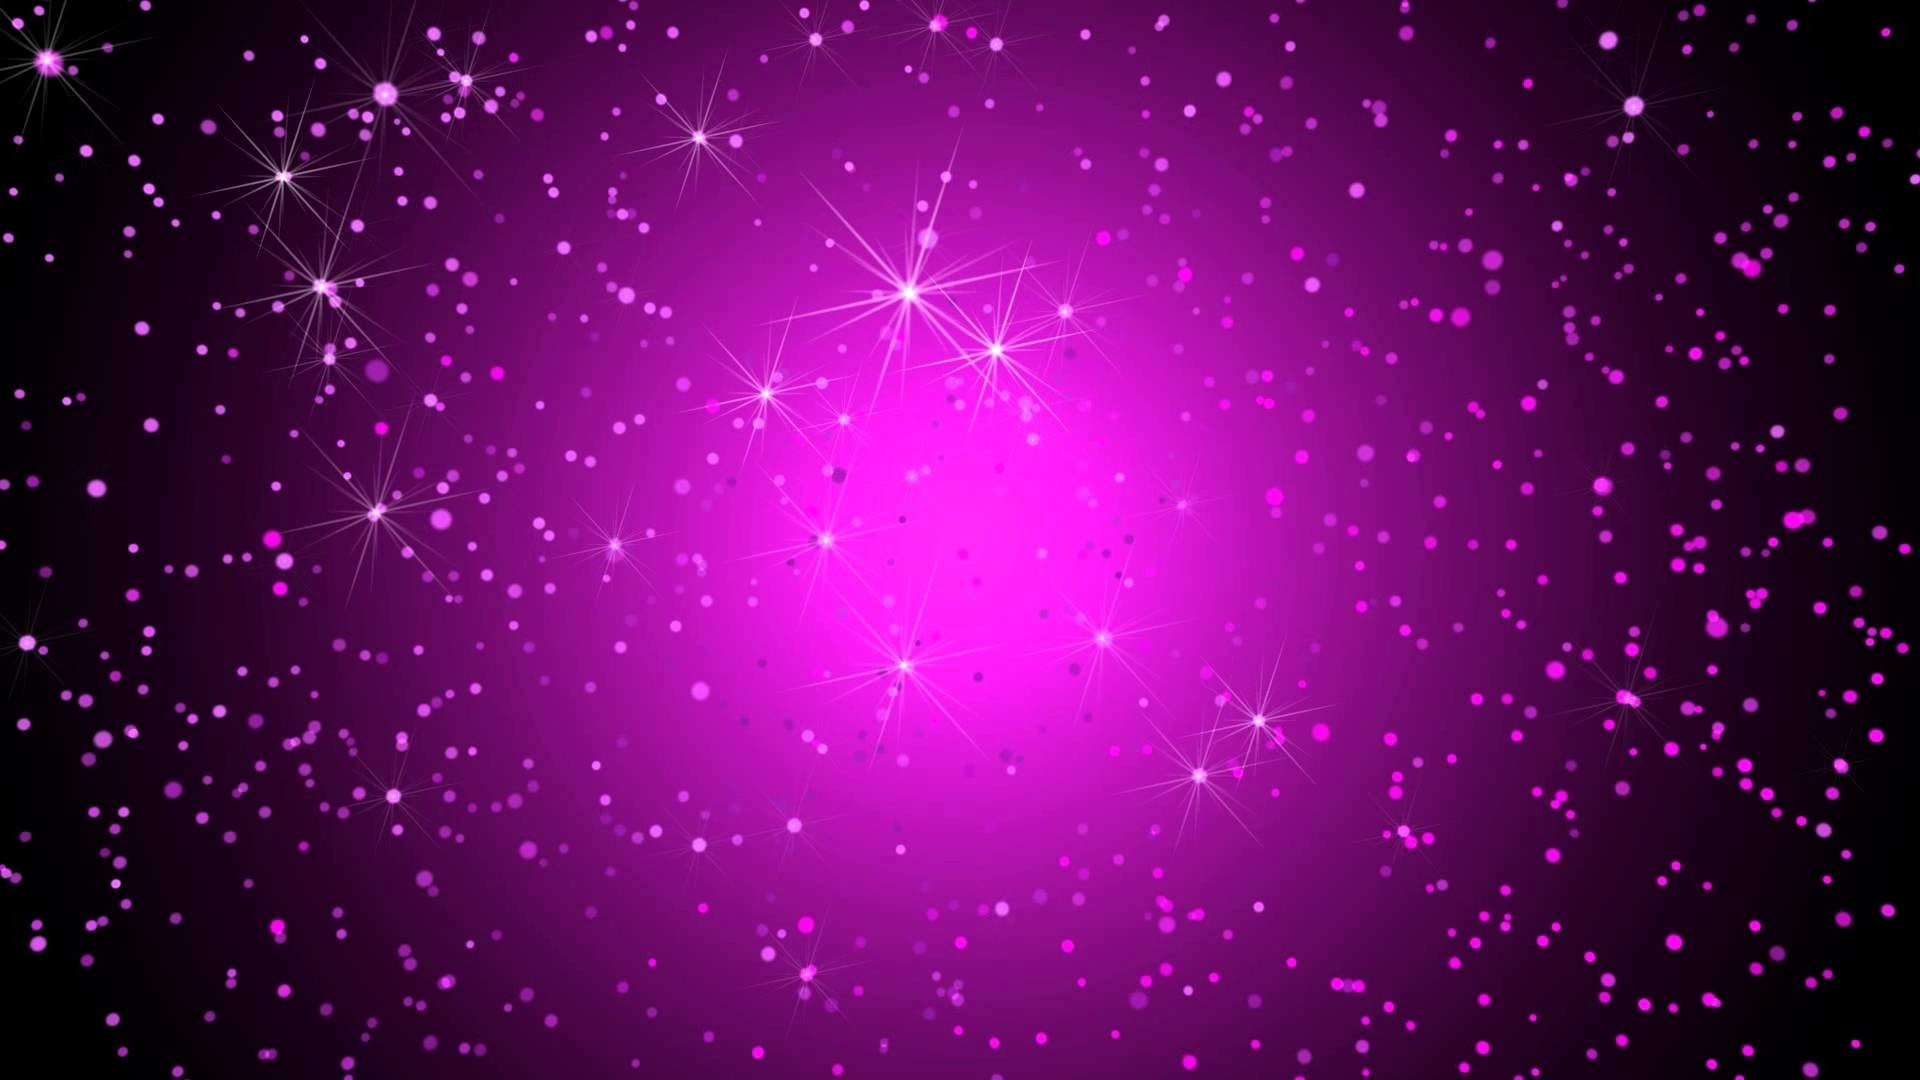 Pretty Pink and Purple Background